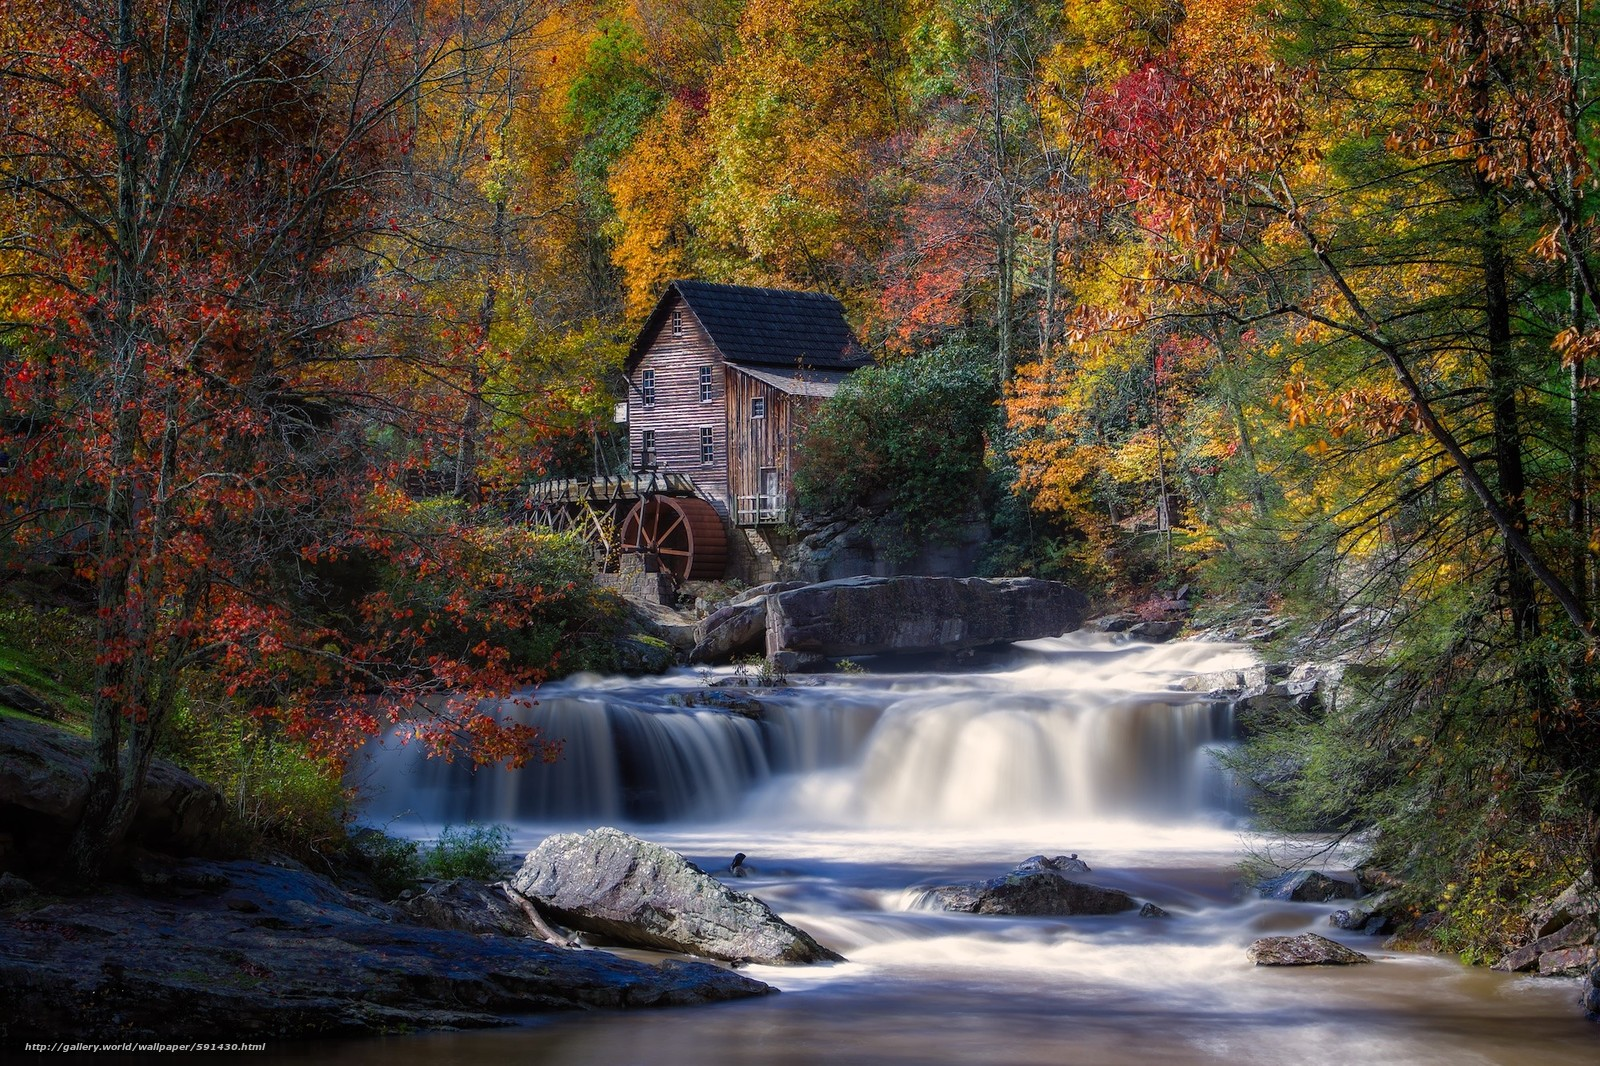 Download wallpaper glade creek grist mill babcock state for West fall